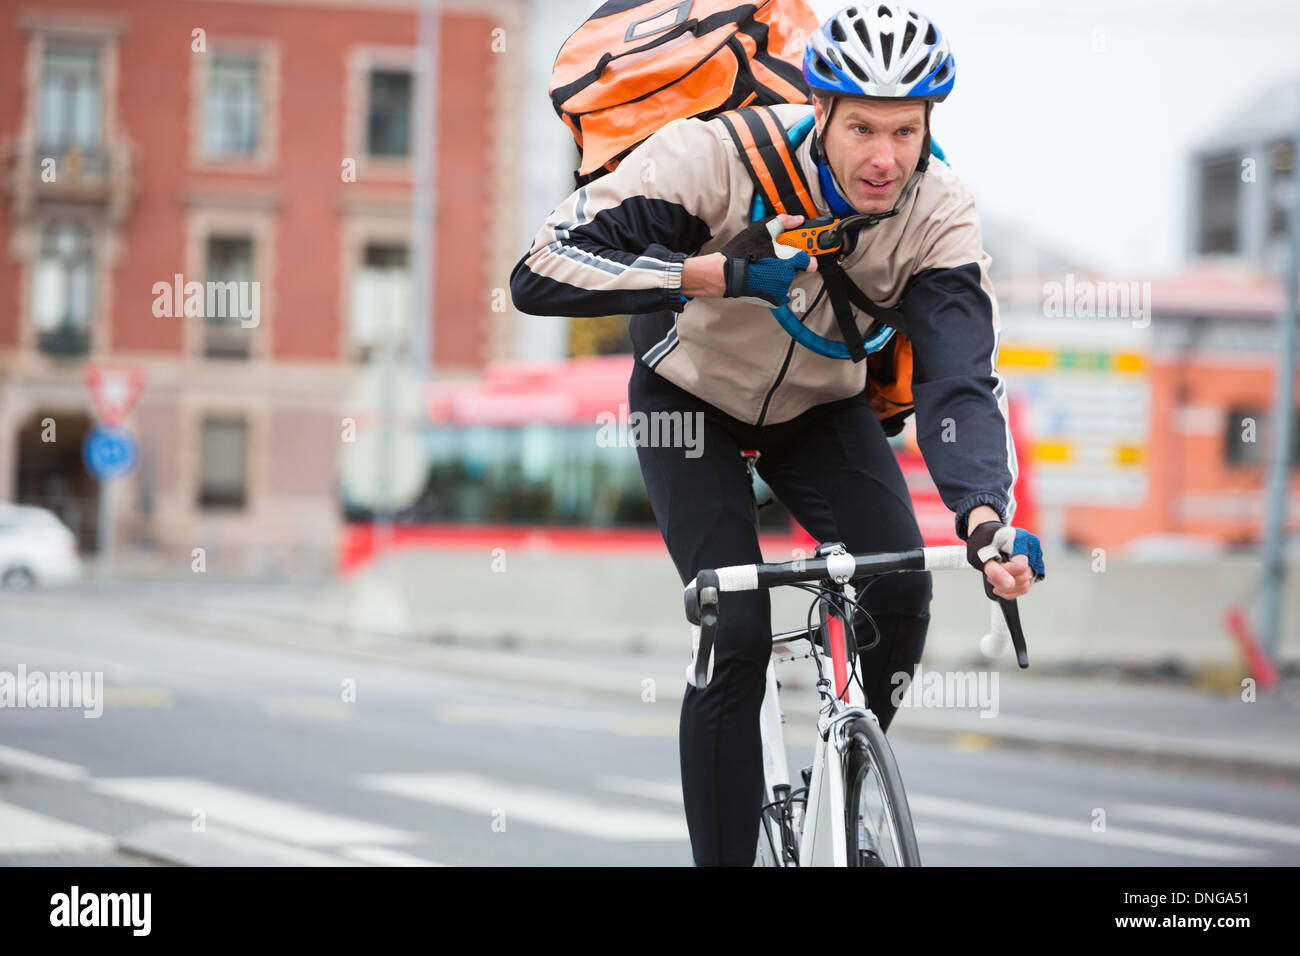 Male Cyclist With Courier Delivery Bag Riding Bicycle - Stock Image